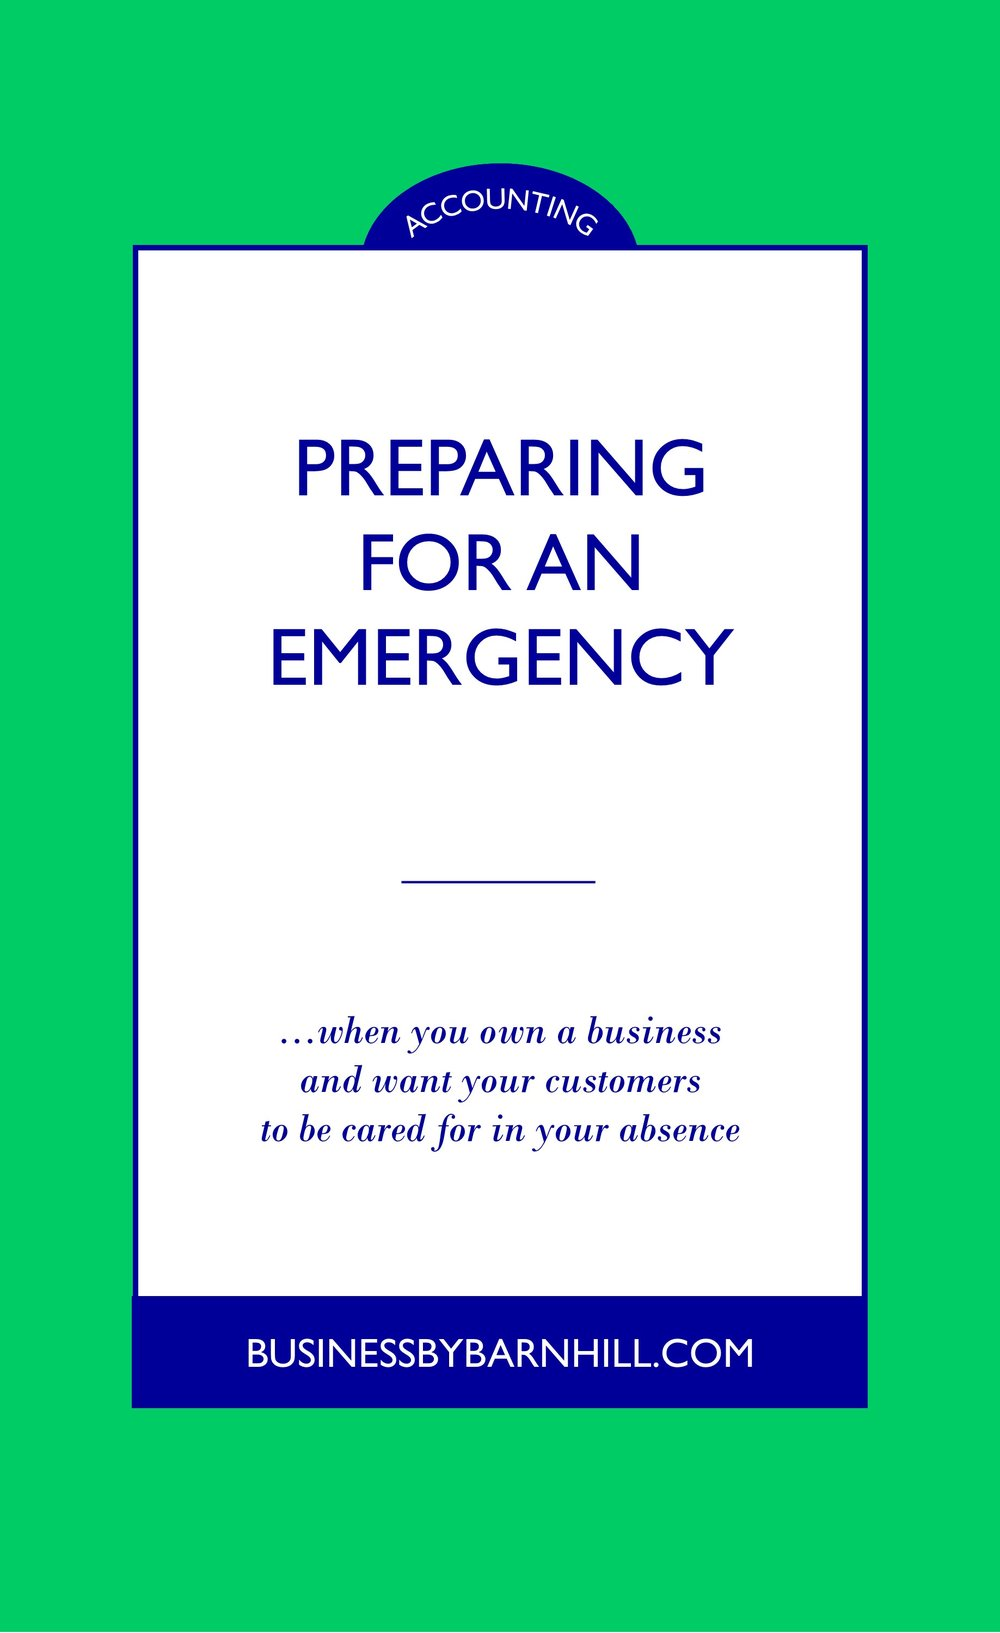 business by barnhill pinterest planning for an emergency when you own a business 2.jpg